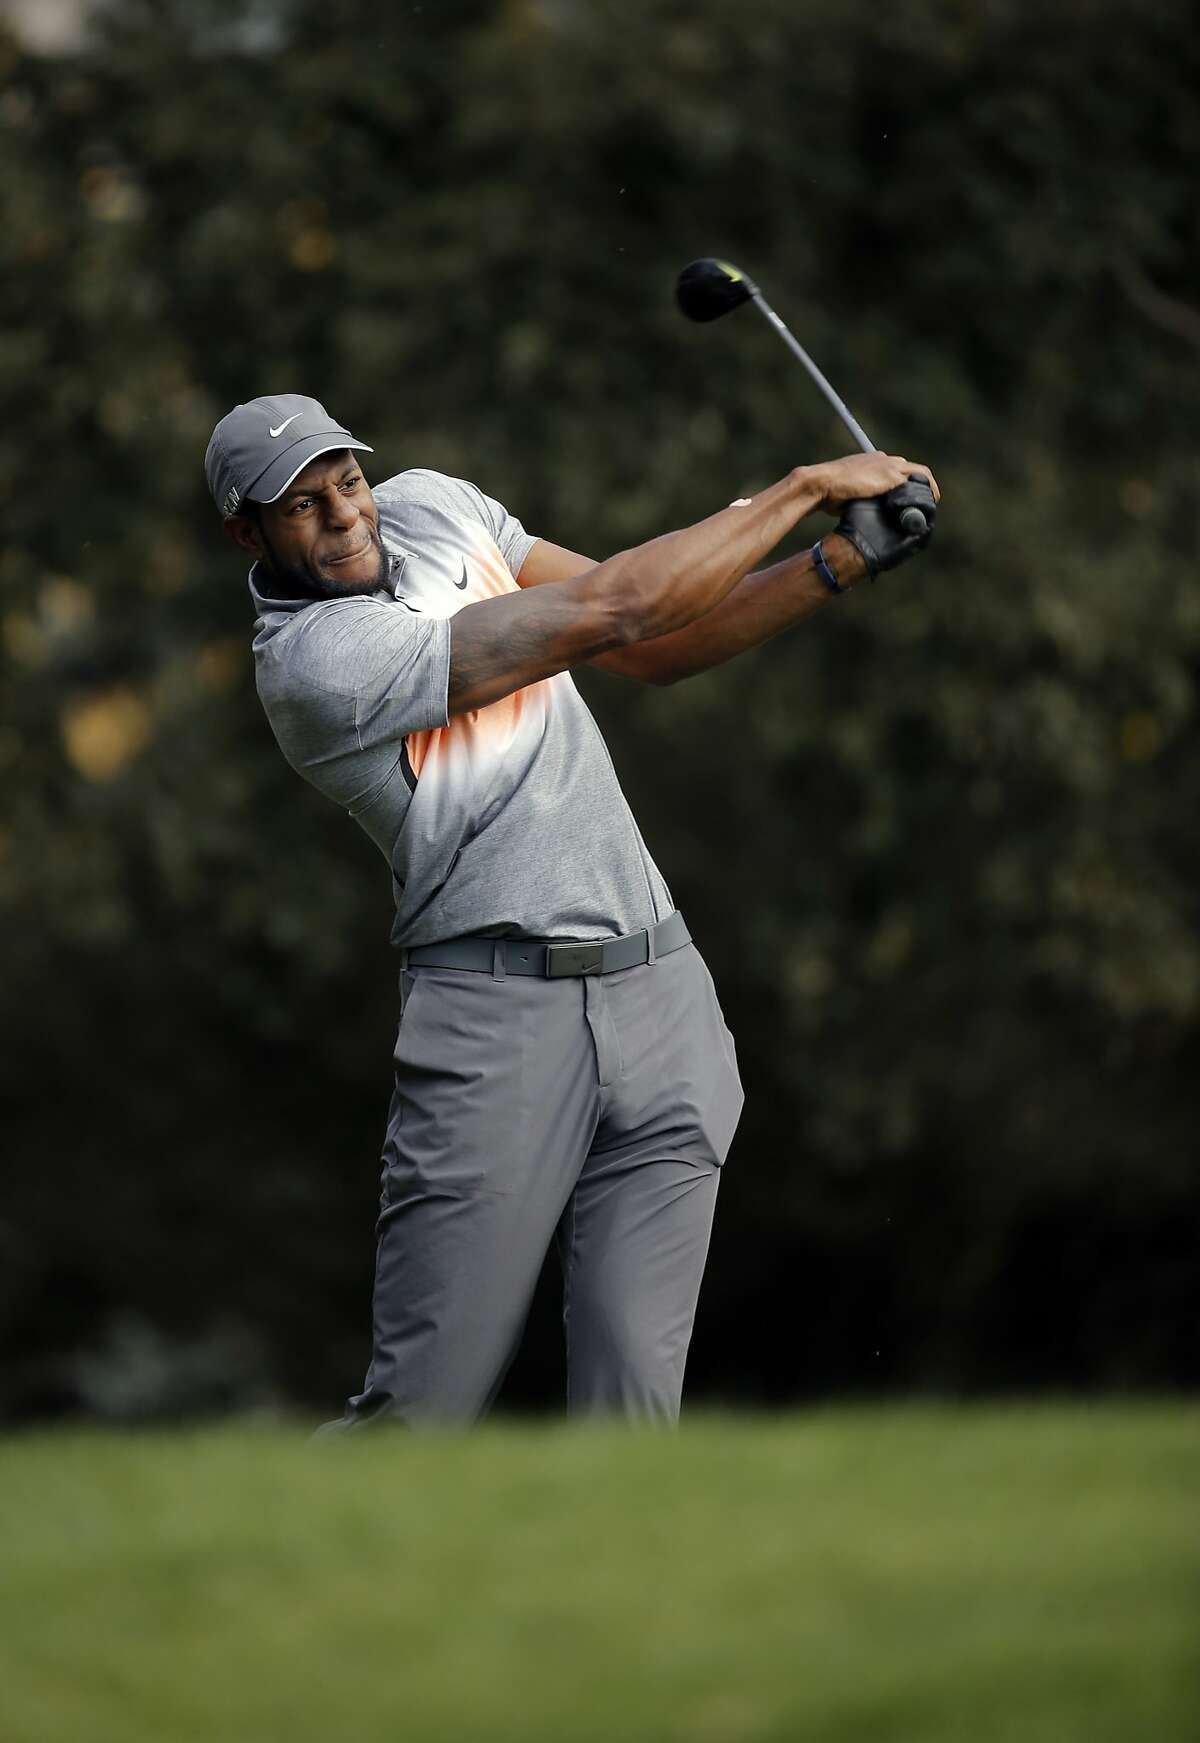 The Warriors' Andre Iguodala hits to the 7th hole during the Fry's.com Pro-Am and practice sessions a day before the start of the tournament in Napa, Calif., on Wed. October 14, 2015.